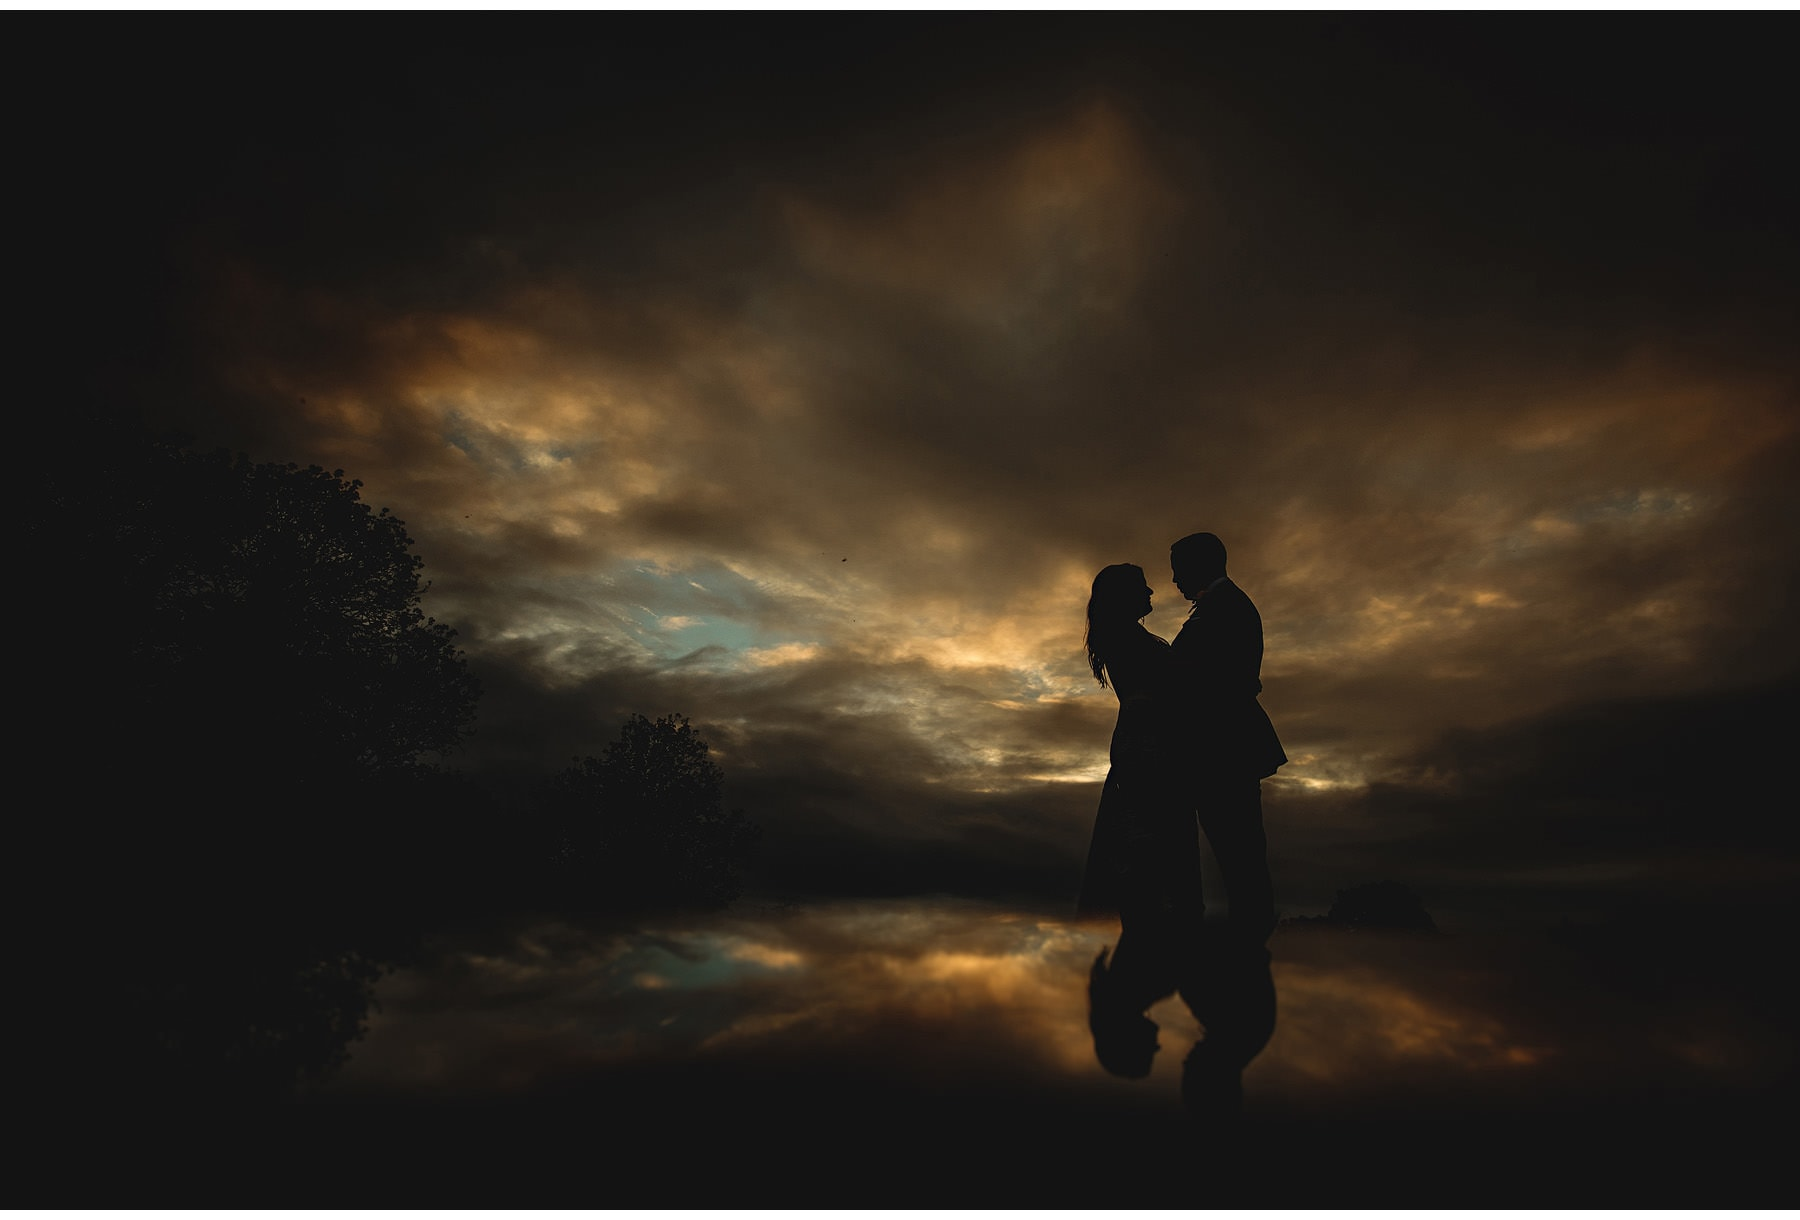 The bride & groom in the silhouette sky